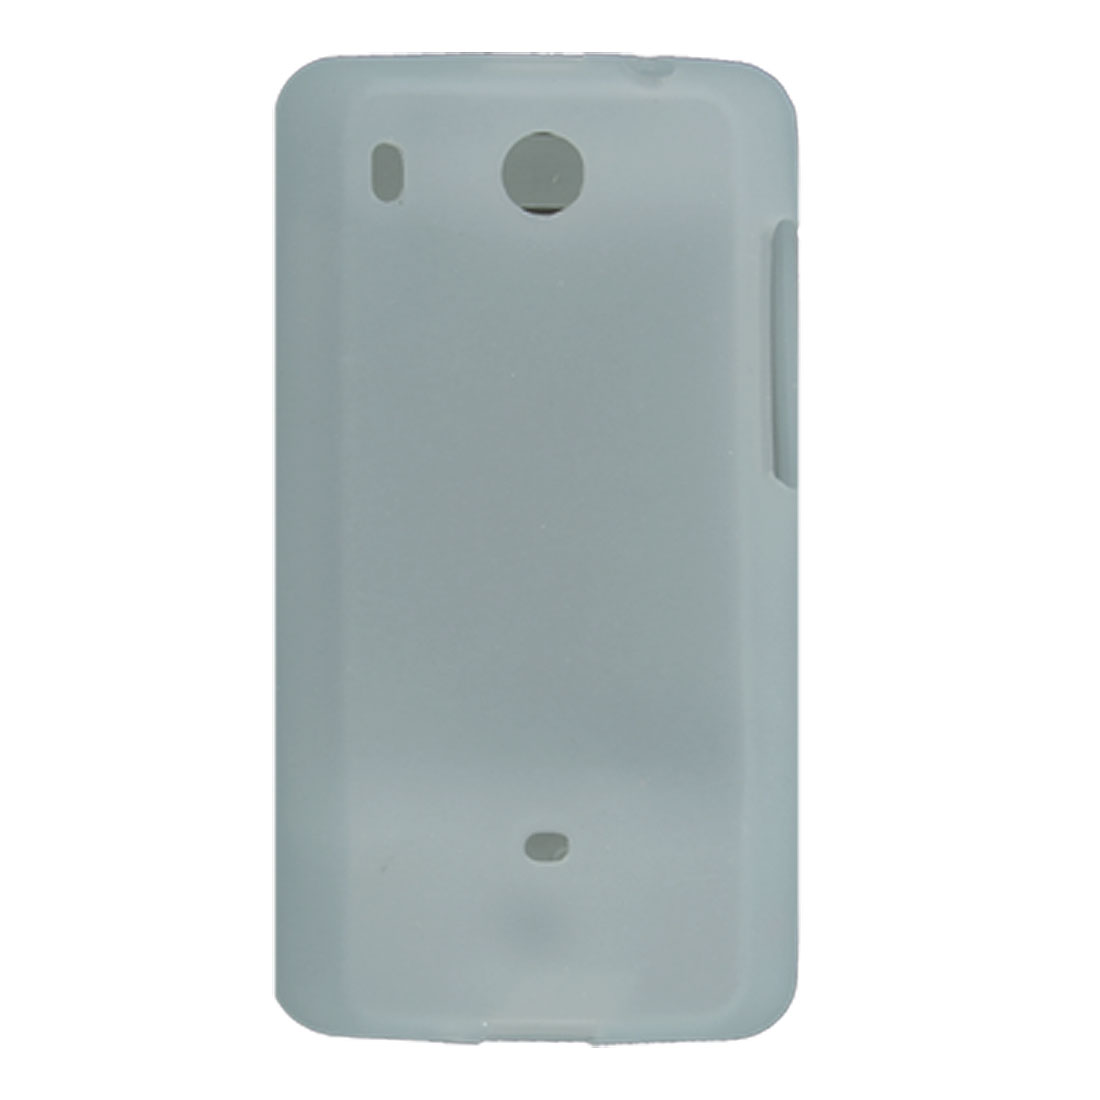 Clear Blue ilicone Skin Cover Case Guard for HTC G3 Hero